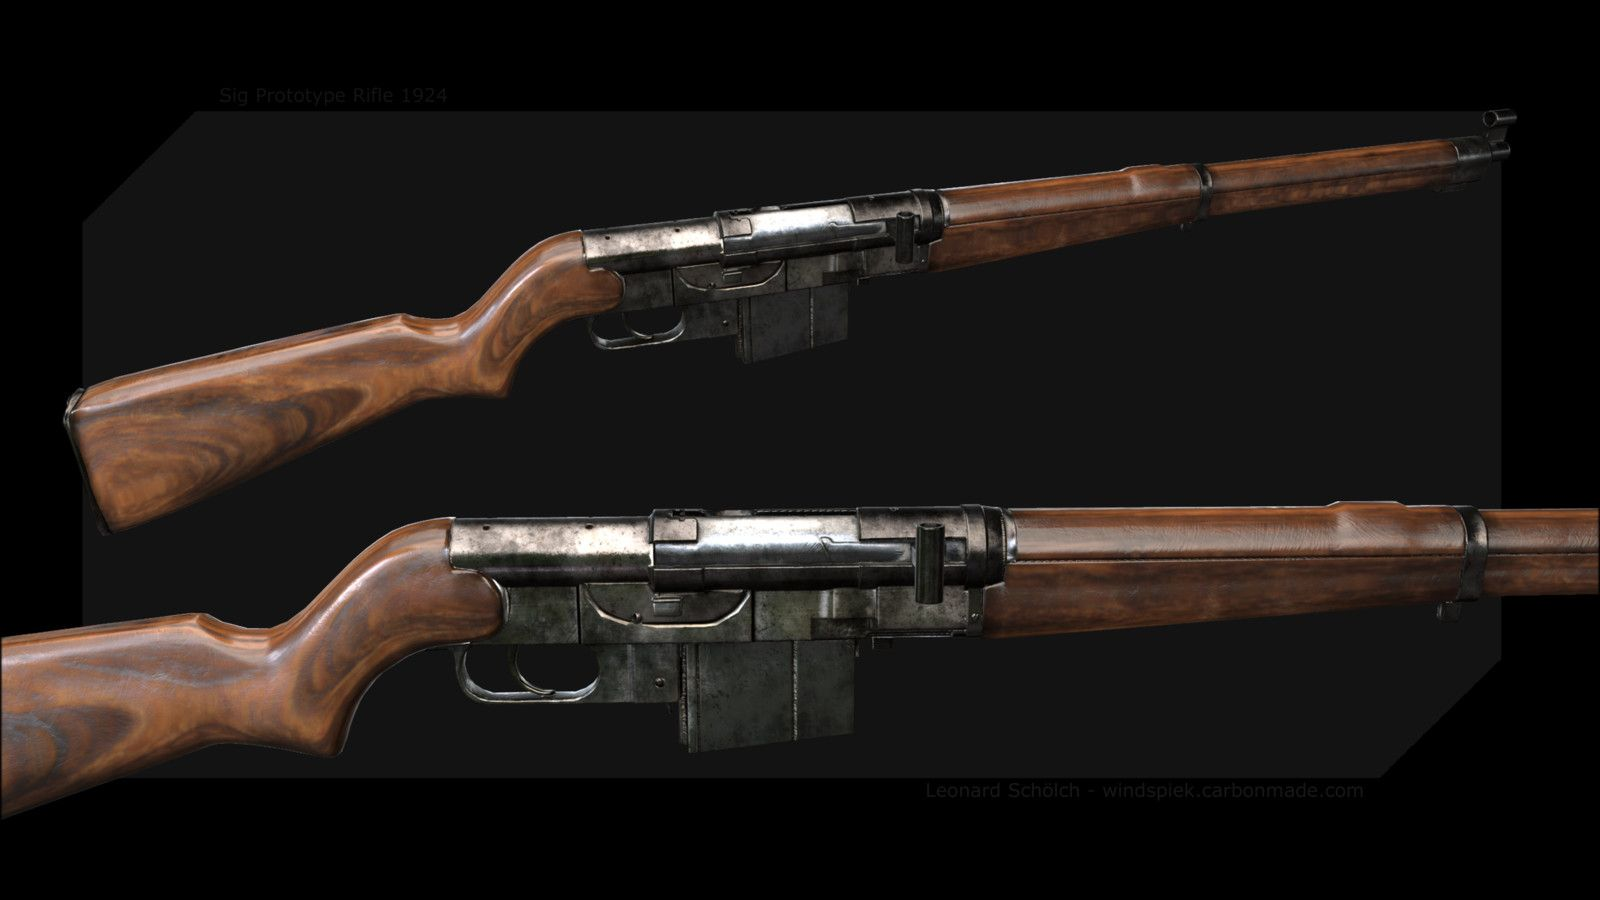 Sig Prototype Rifle 1925, Leonard Schölch on ArtStation at https://www.artstation.com/artwork/RL5wv